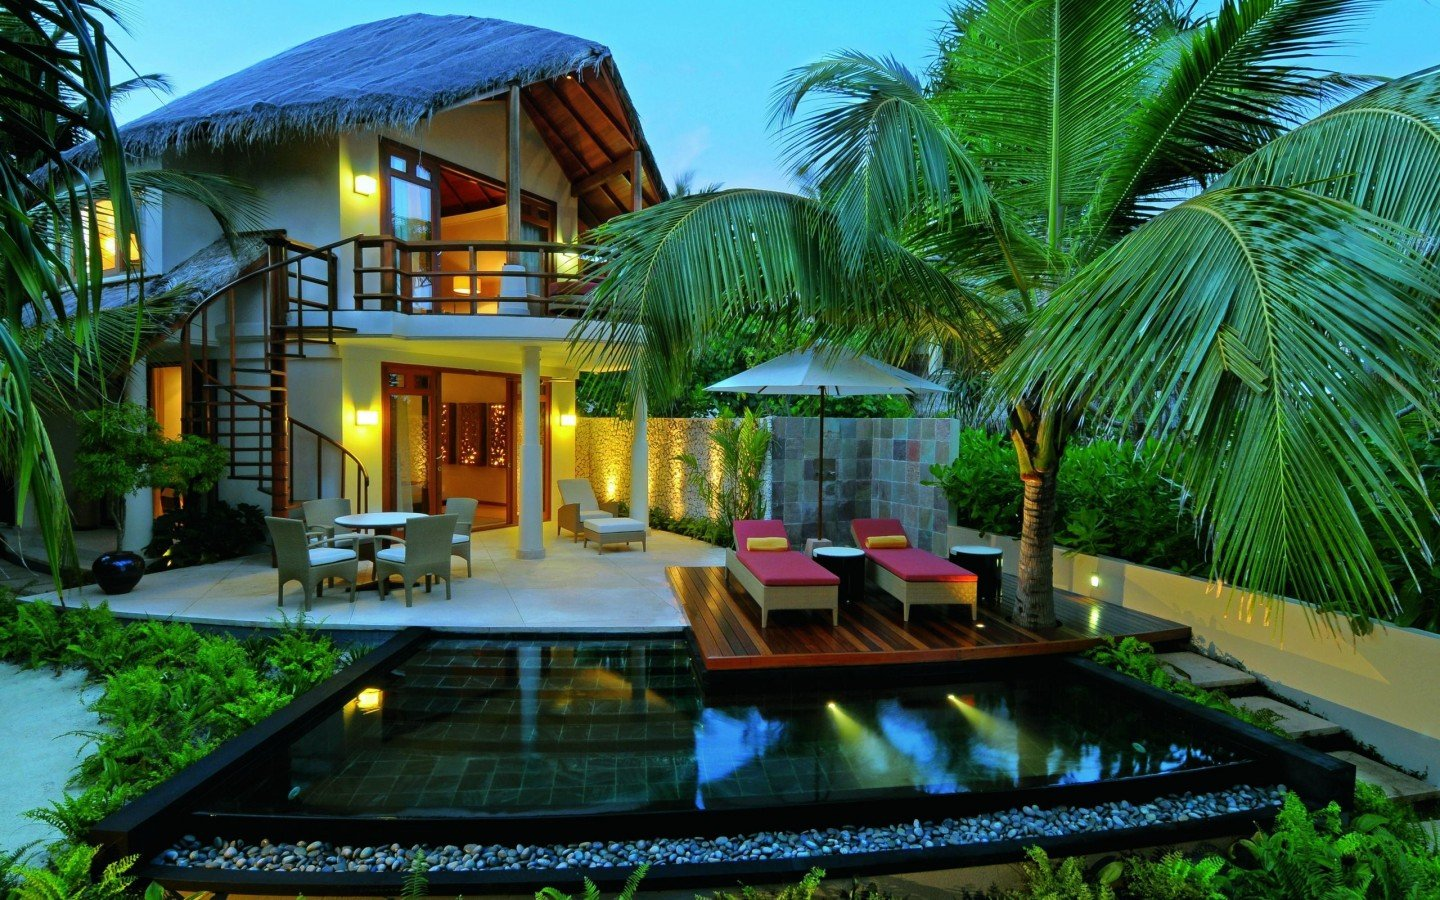 Beautiful villa desktop wallpaper wallpapersafari for Beautiful villas images